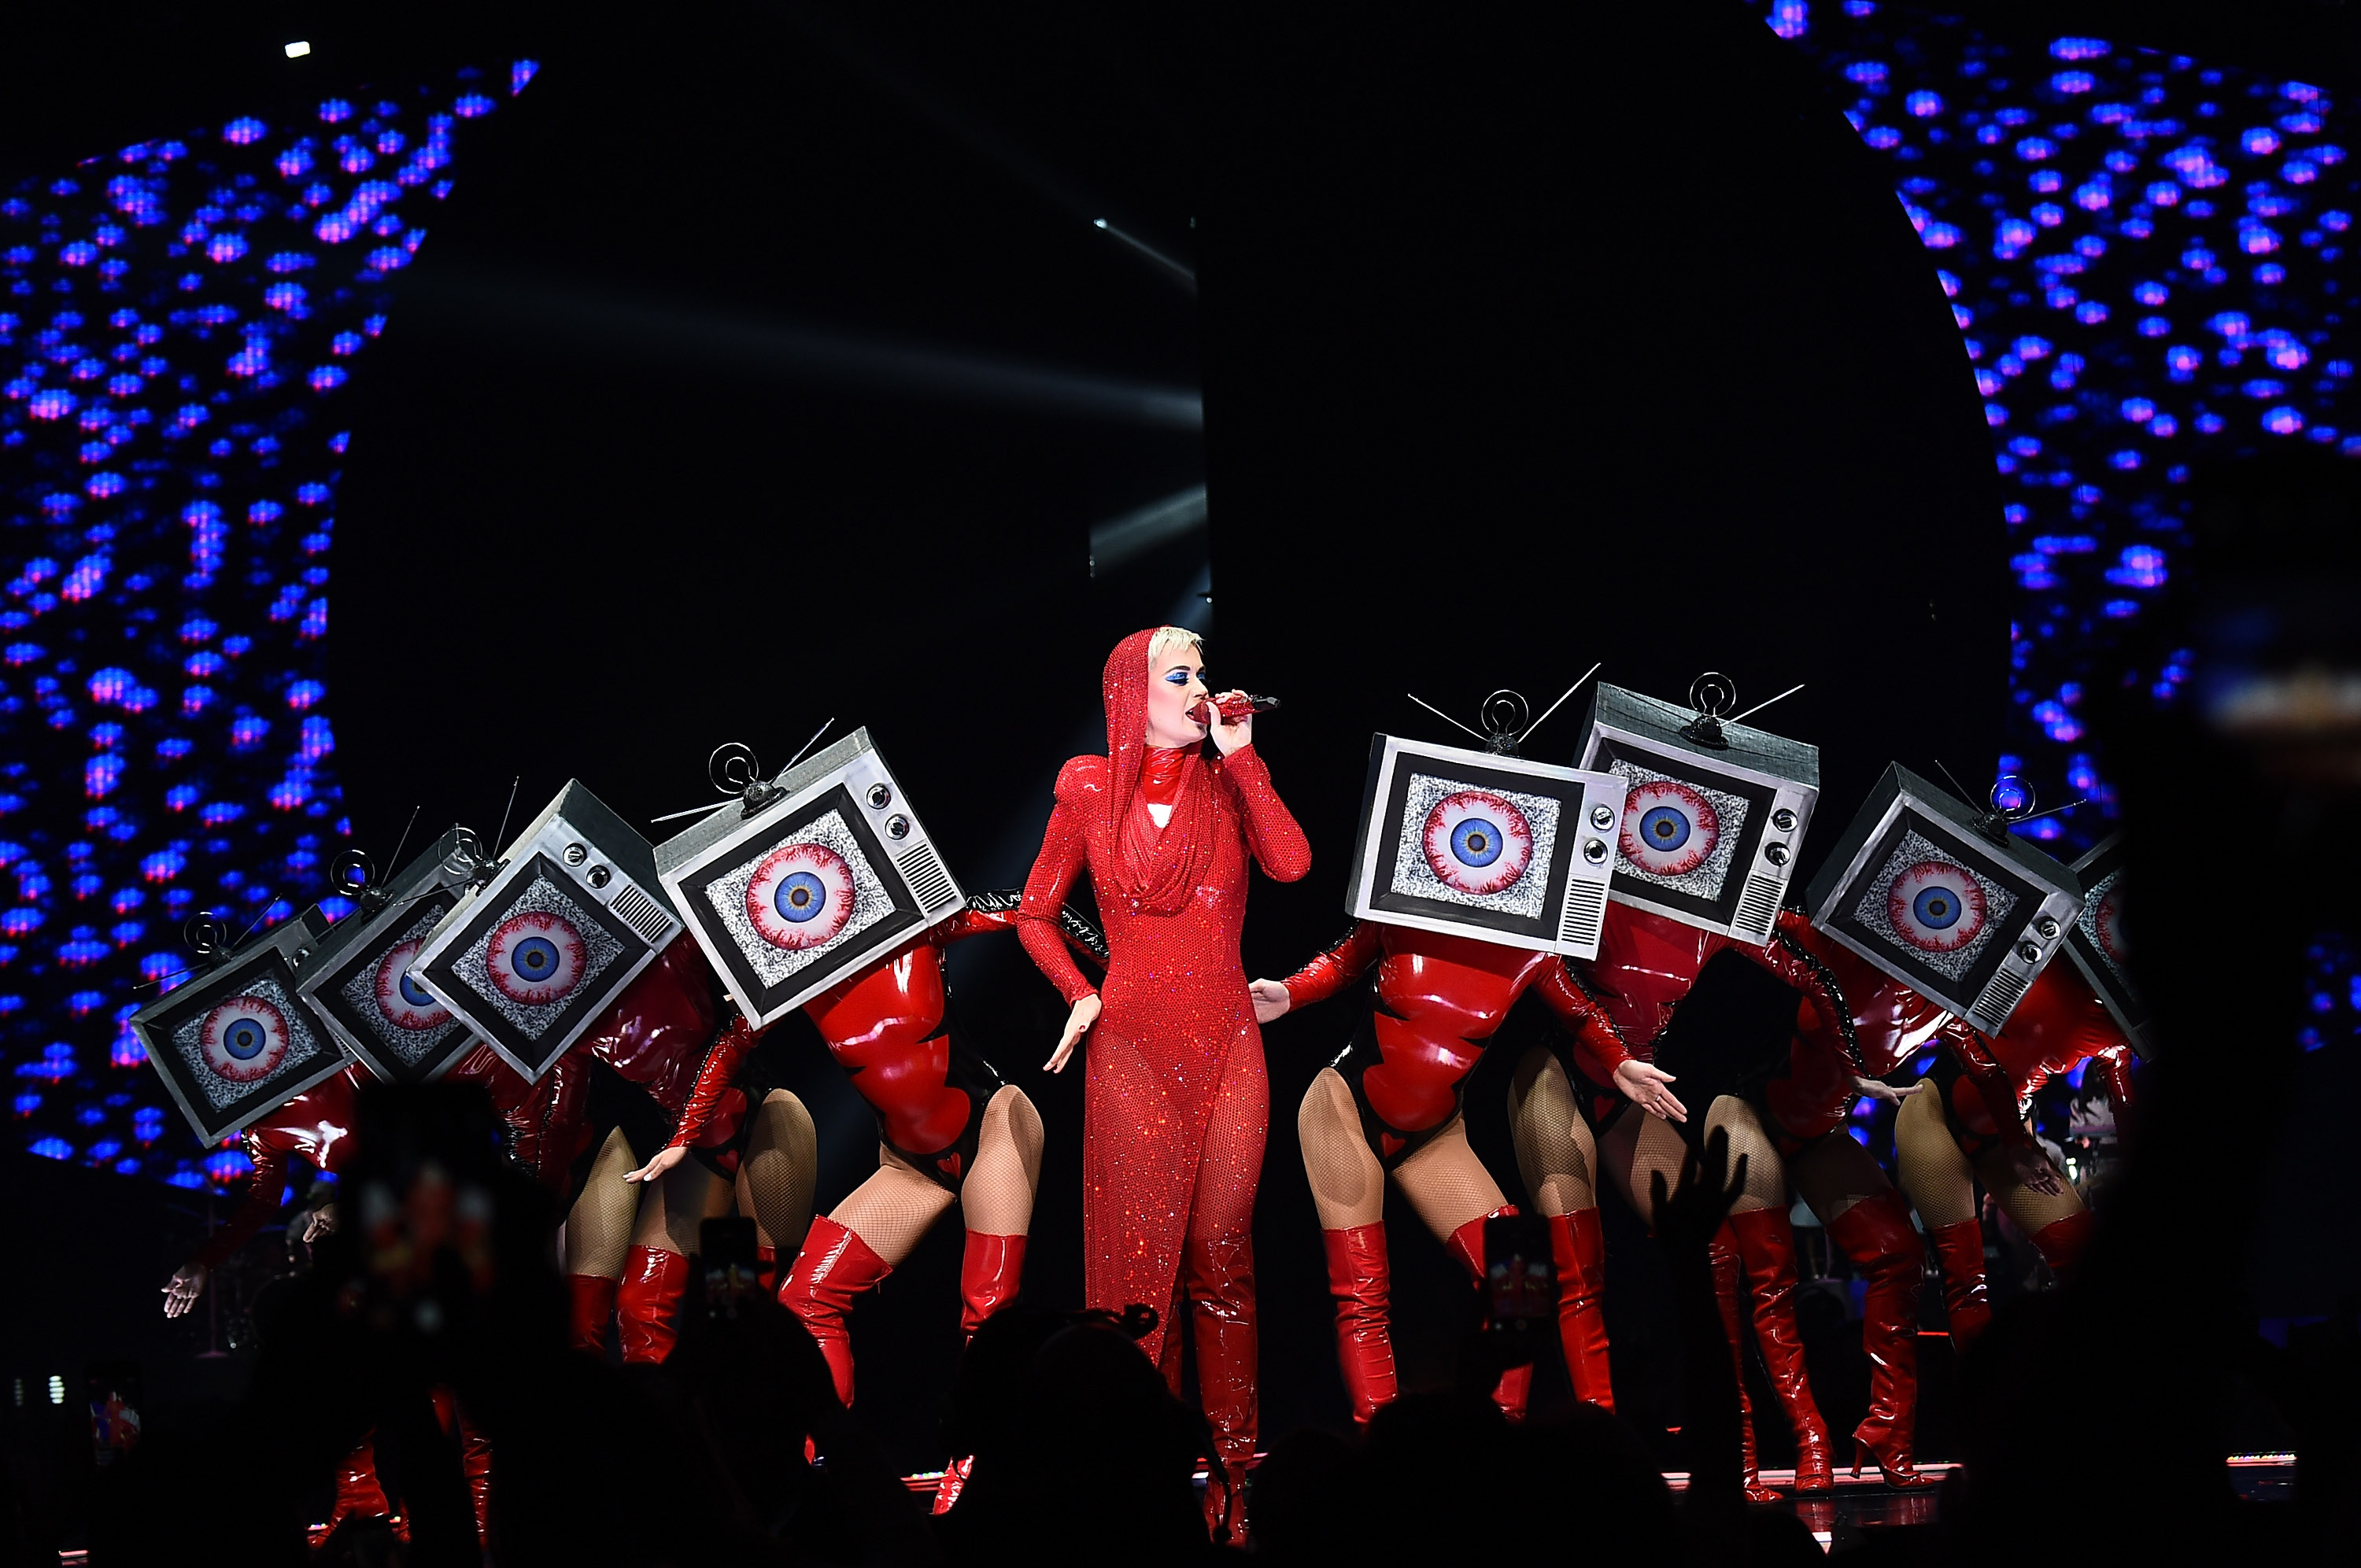 NEW YORK, NY - OCTOBER 02:  Katy Perry performs onstage at Madison Square Garden on October 2, 2017 in New York City.  (Photo by Michael Loccisano/Getty Images)